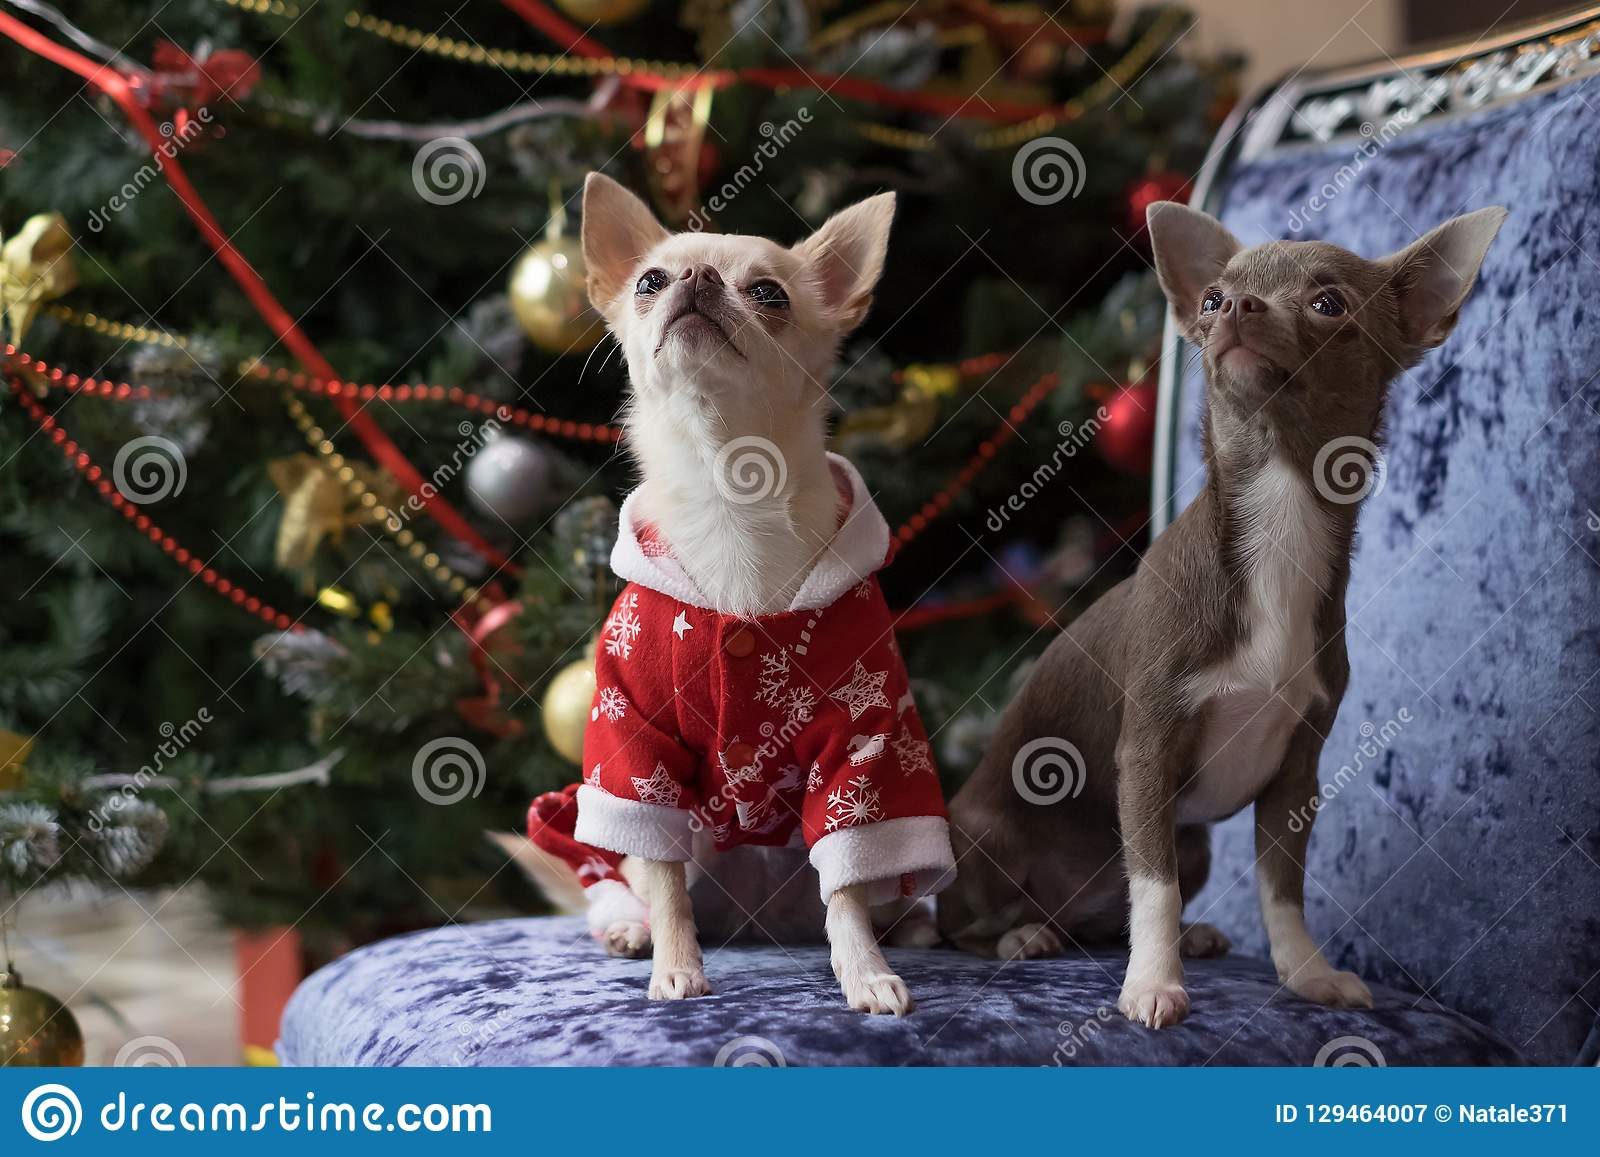 Small dogs are white and brown on the background of a decorated Christmas tree on a blue armchair.